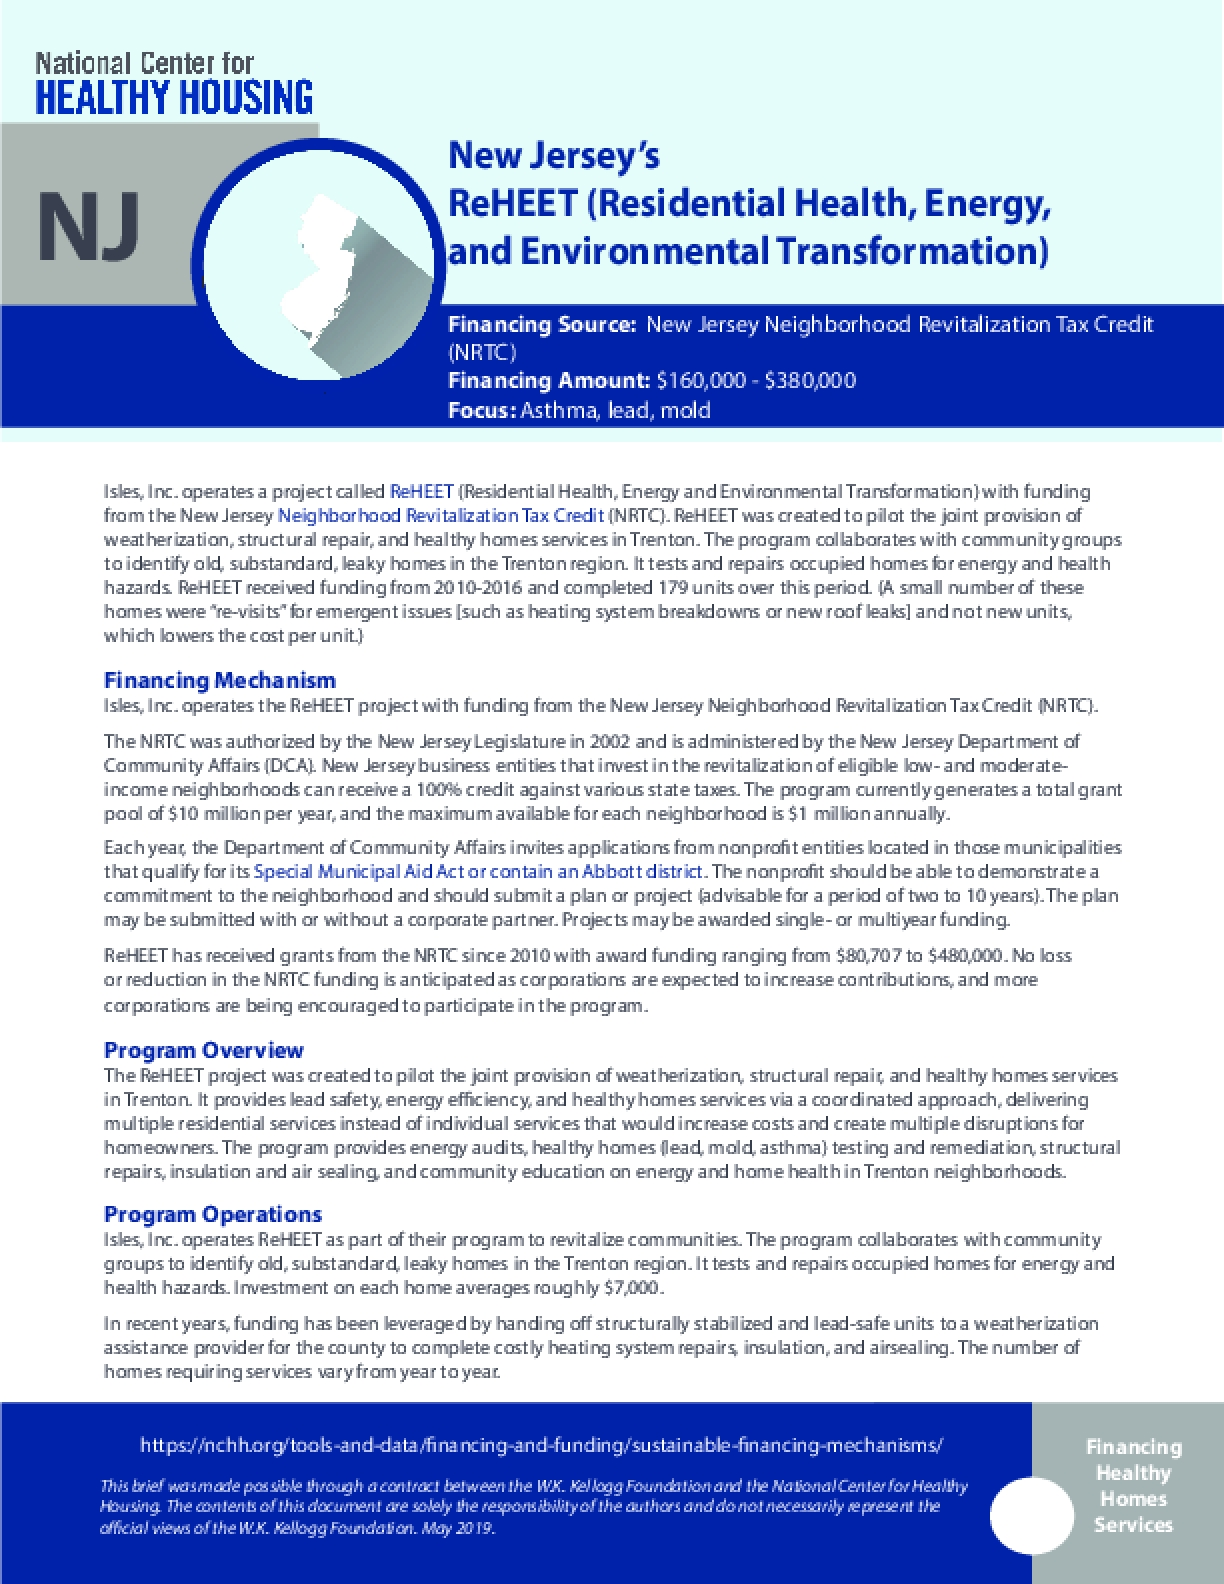 New Jersey's ReHEET (Residential Health, Energy, and Environmental Transformation)